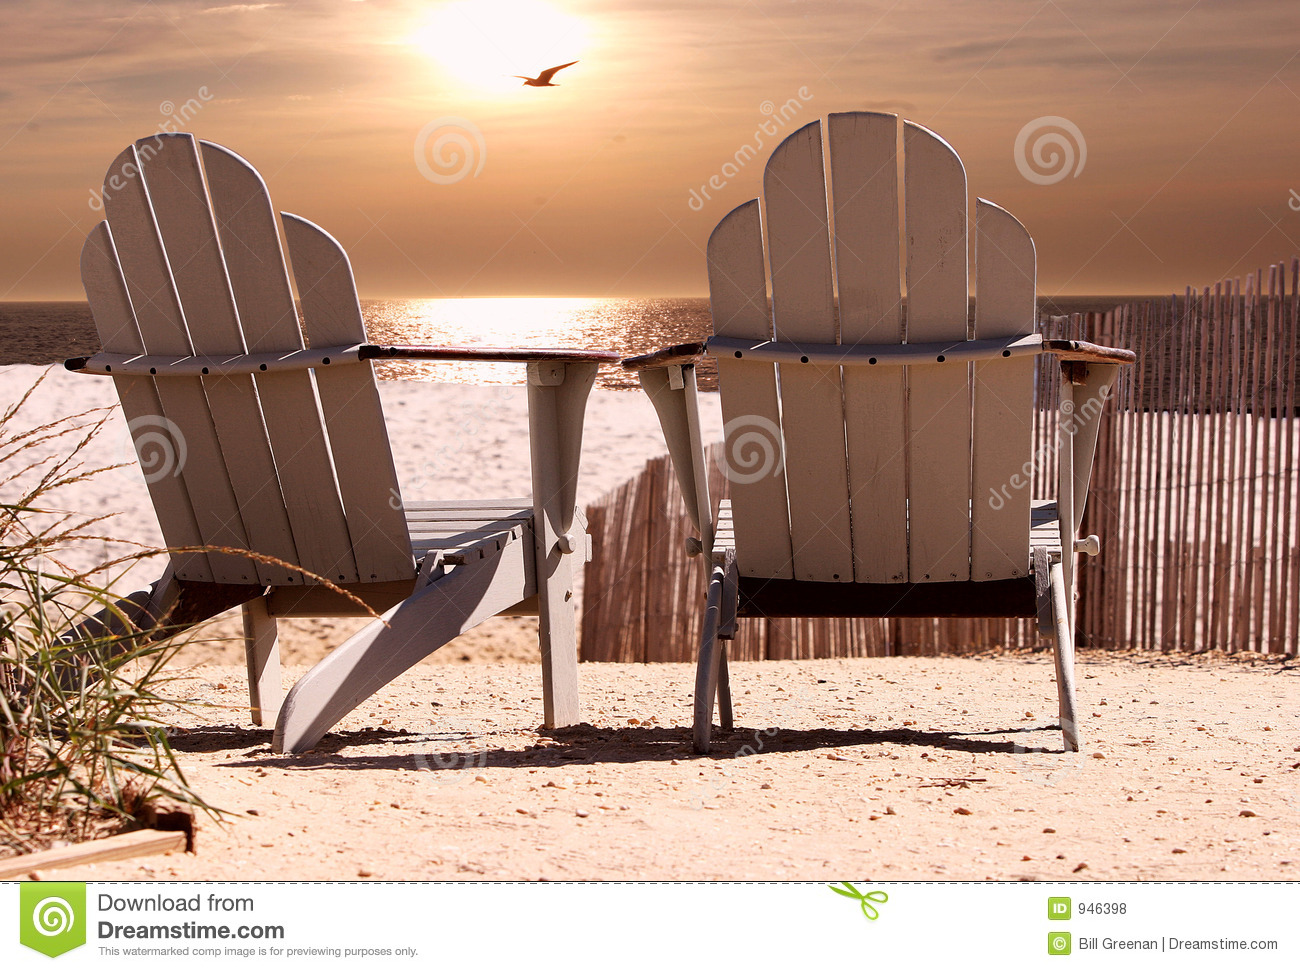 Chairs on beach as the sunsets with seagull flying across background.